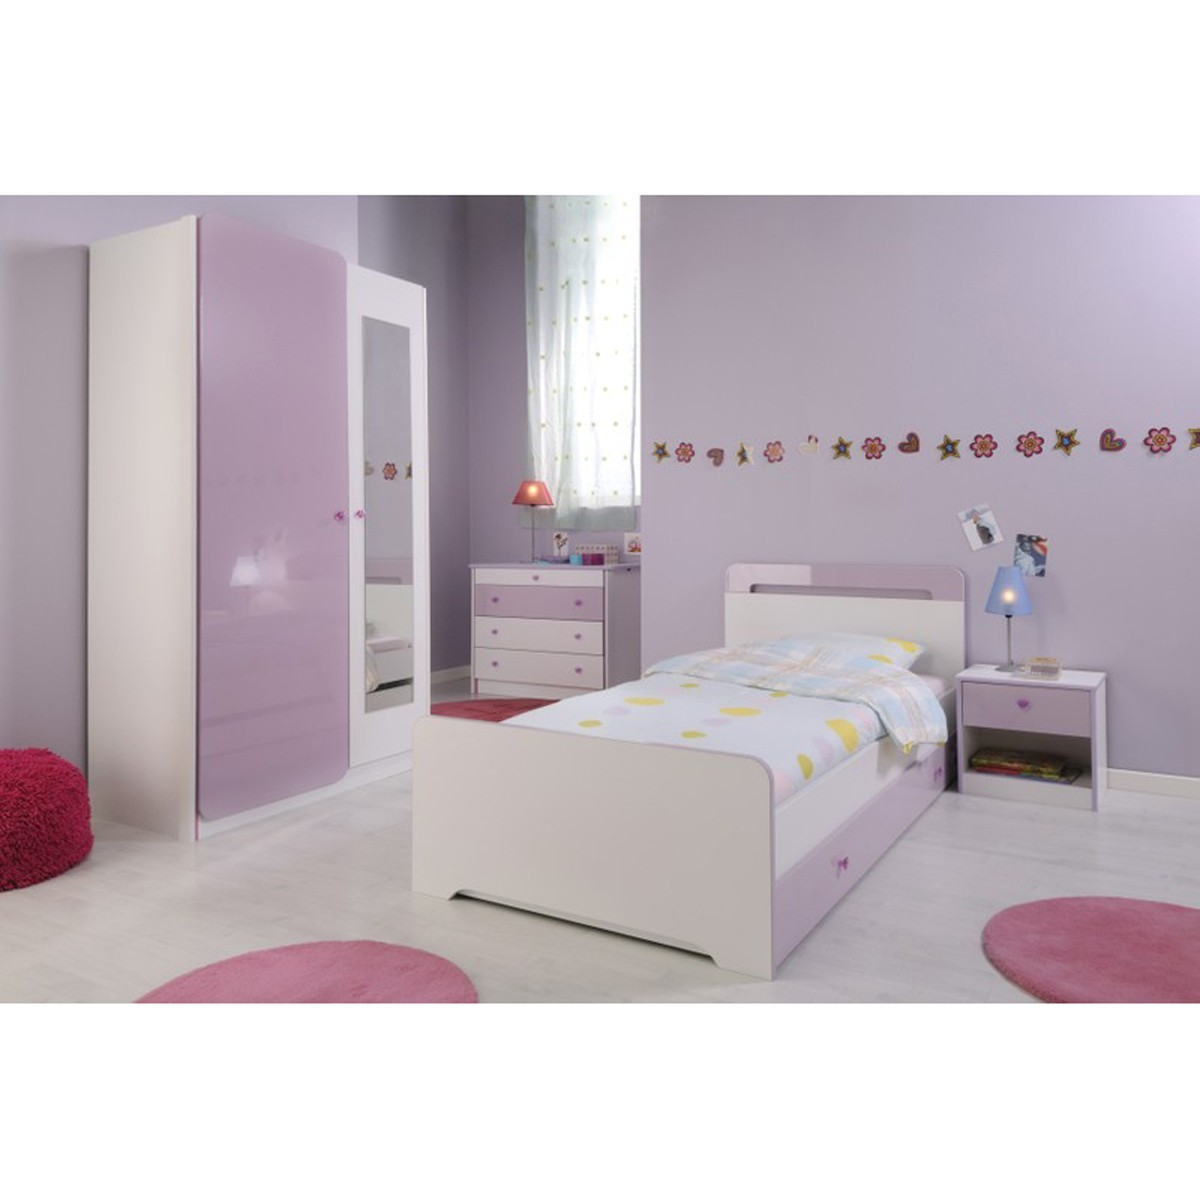 kinderbett jugendbett m dchenbett bett 90x200 wei flieder ebay. Black Bedroom Furniture Sets. Home Design Ideas